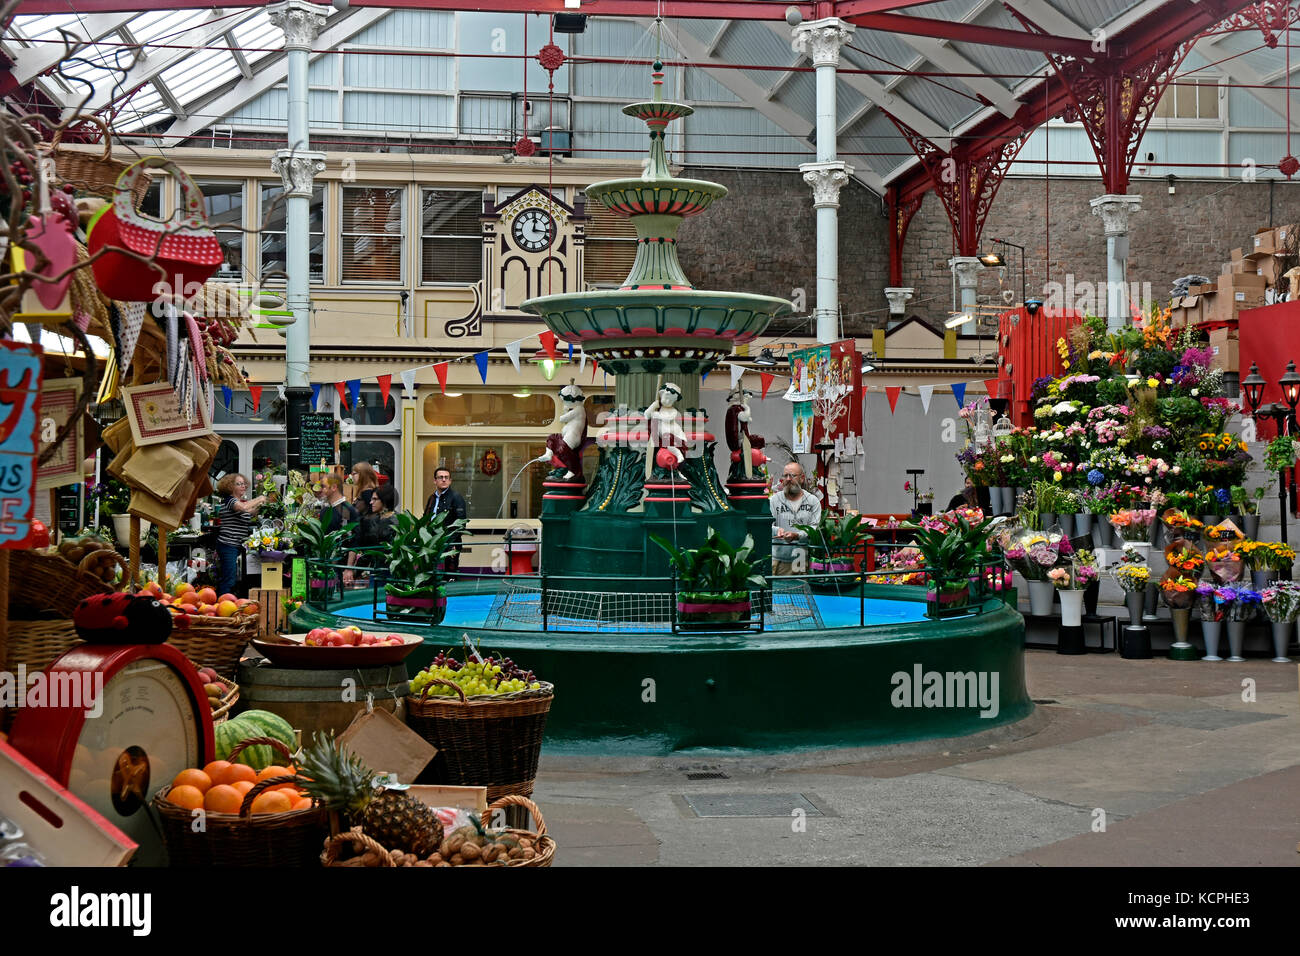 The Central Market - St Helier - Jersey - Channel Isles - circa 1882 - Victorian - covered market - fruit - vegetables - Stock Image